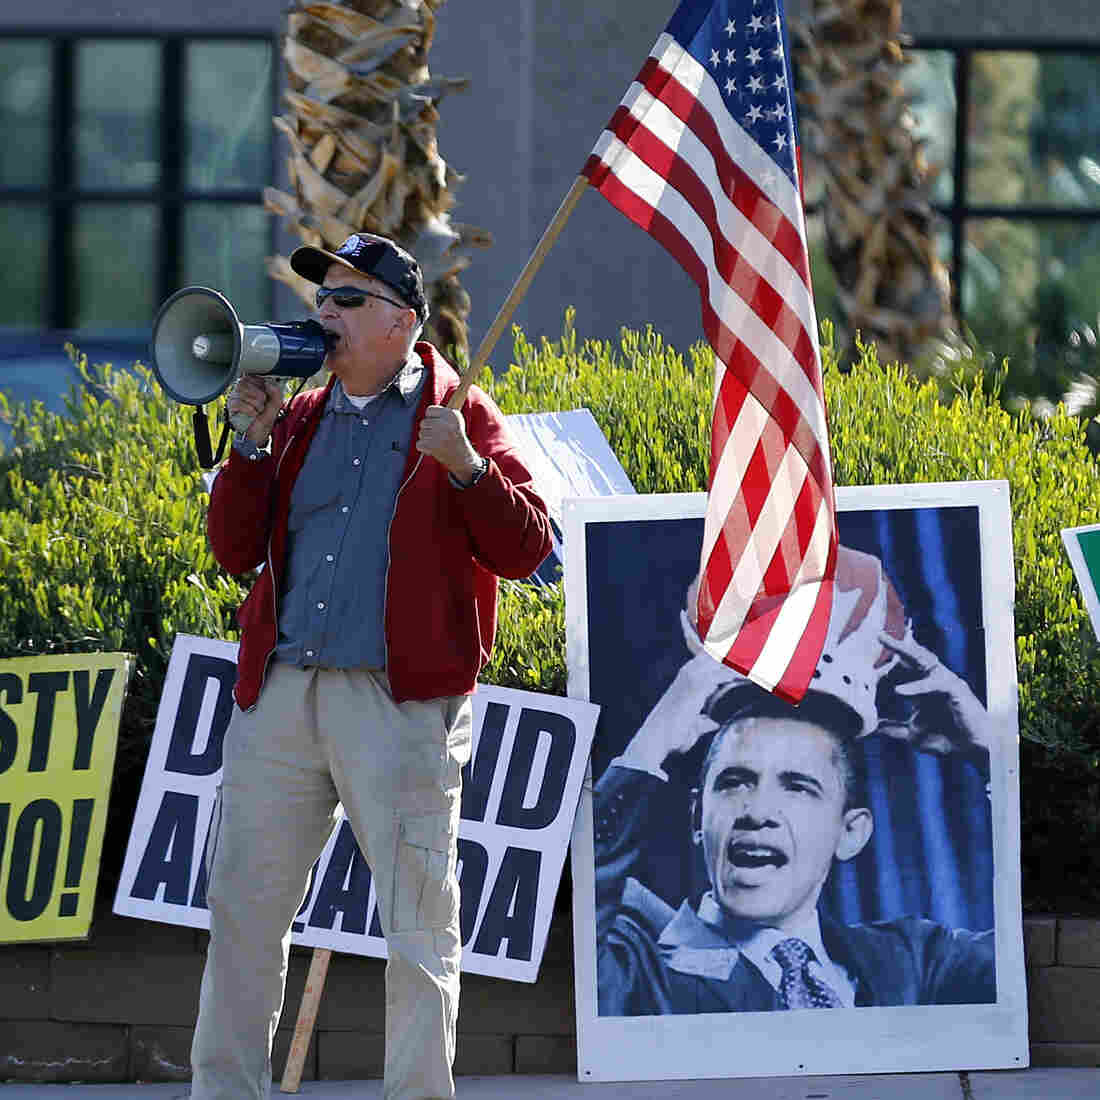 An anti-Obama protester yells on a megaphone Friday across the street from Del Sol High School in Las Vegas, where President Obama delivered remarks on his use of executive authority to relax U.S. immigration policy in Las Vegas.